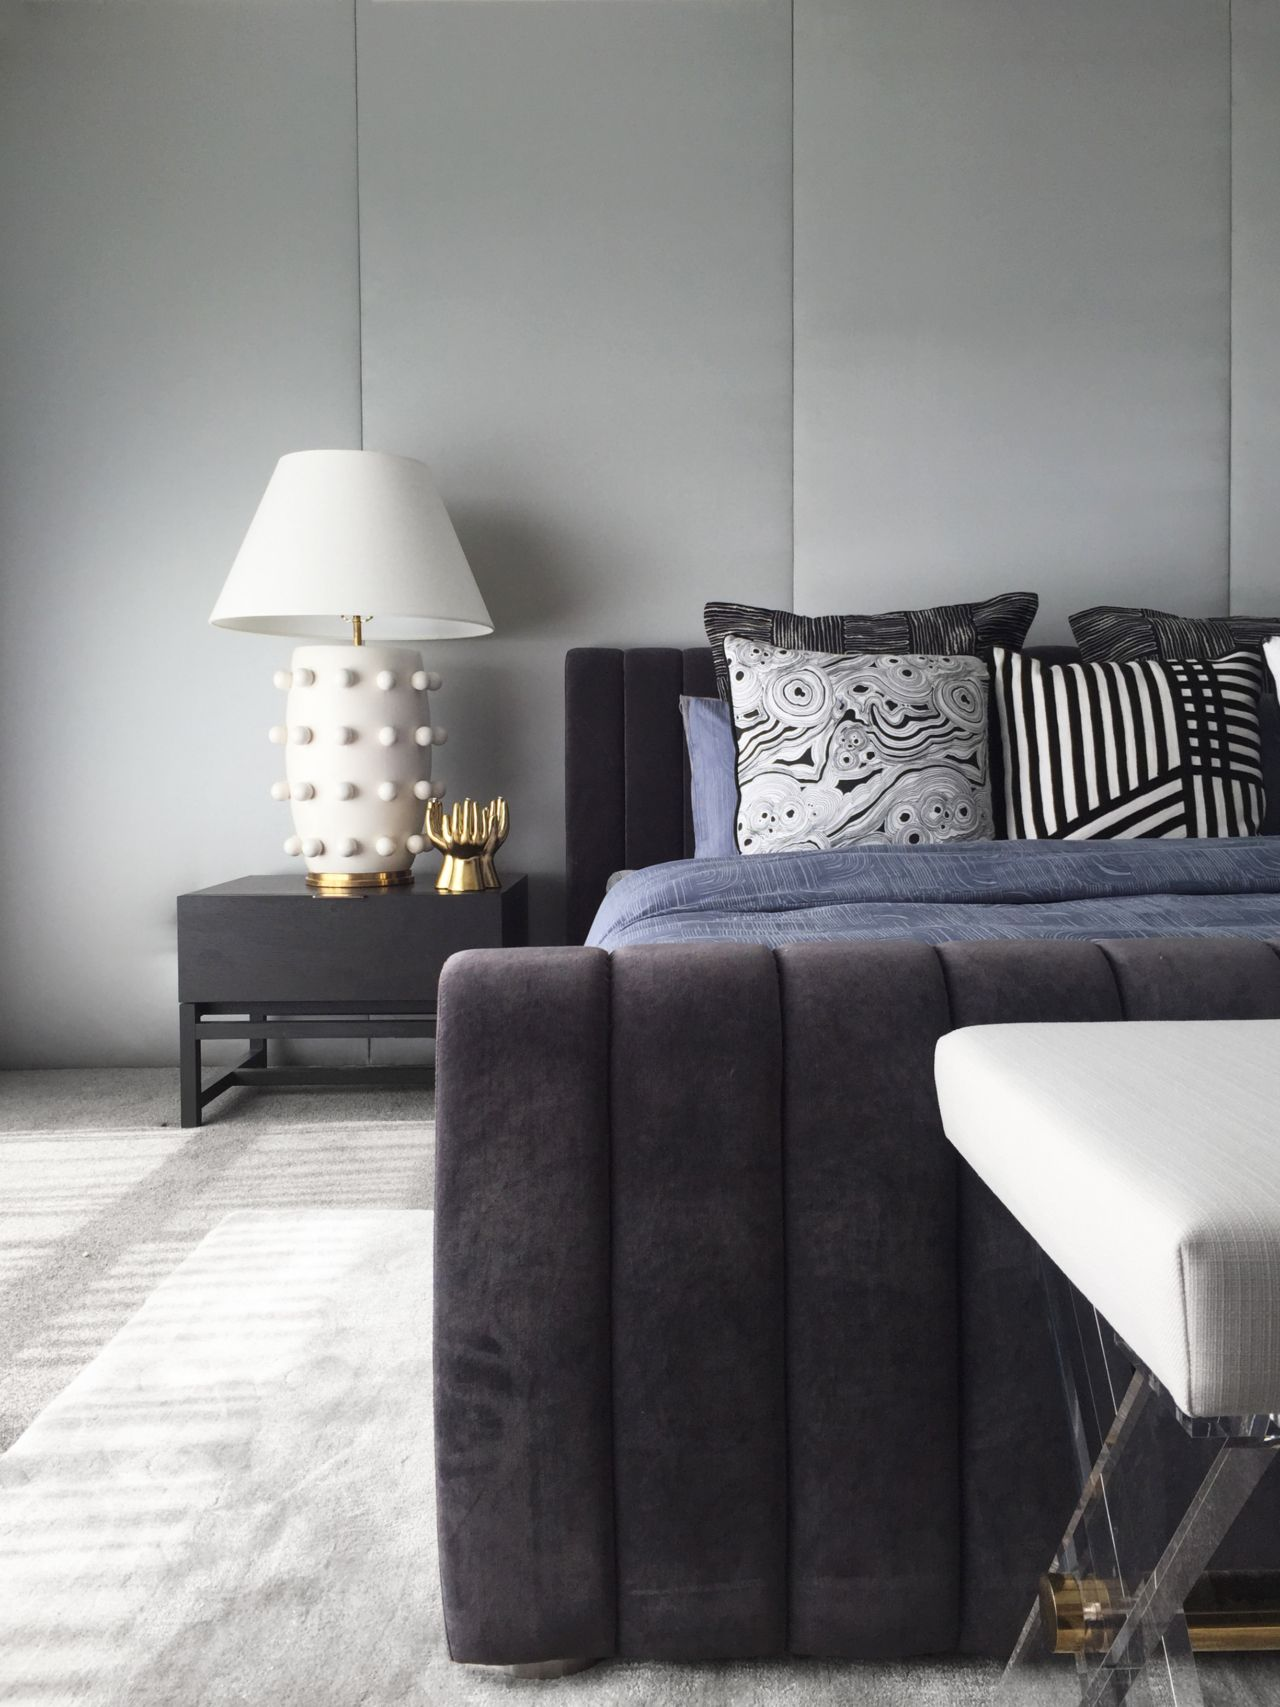 Boutique Hotel Bedrooms: Real Home: Perth Family Abode Has Boutique Hotel Vibe